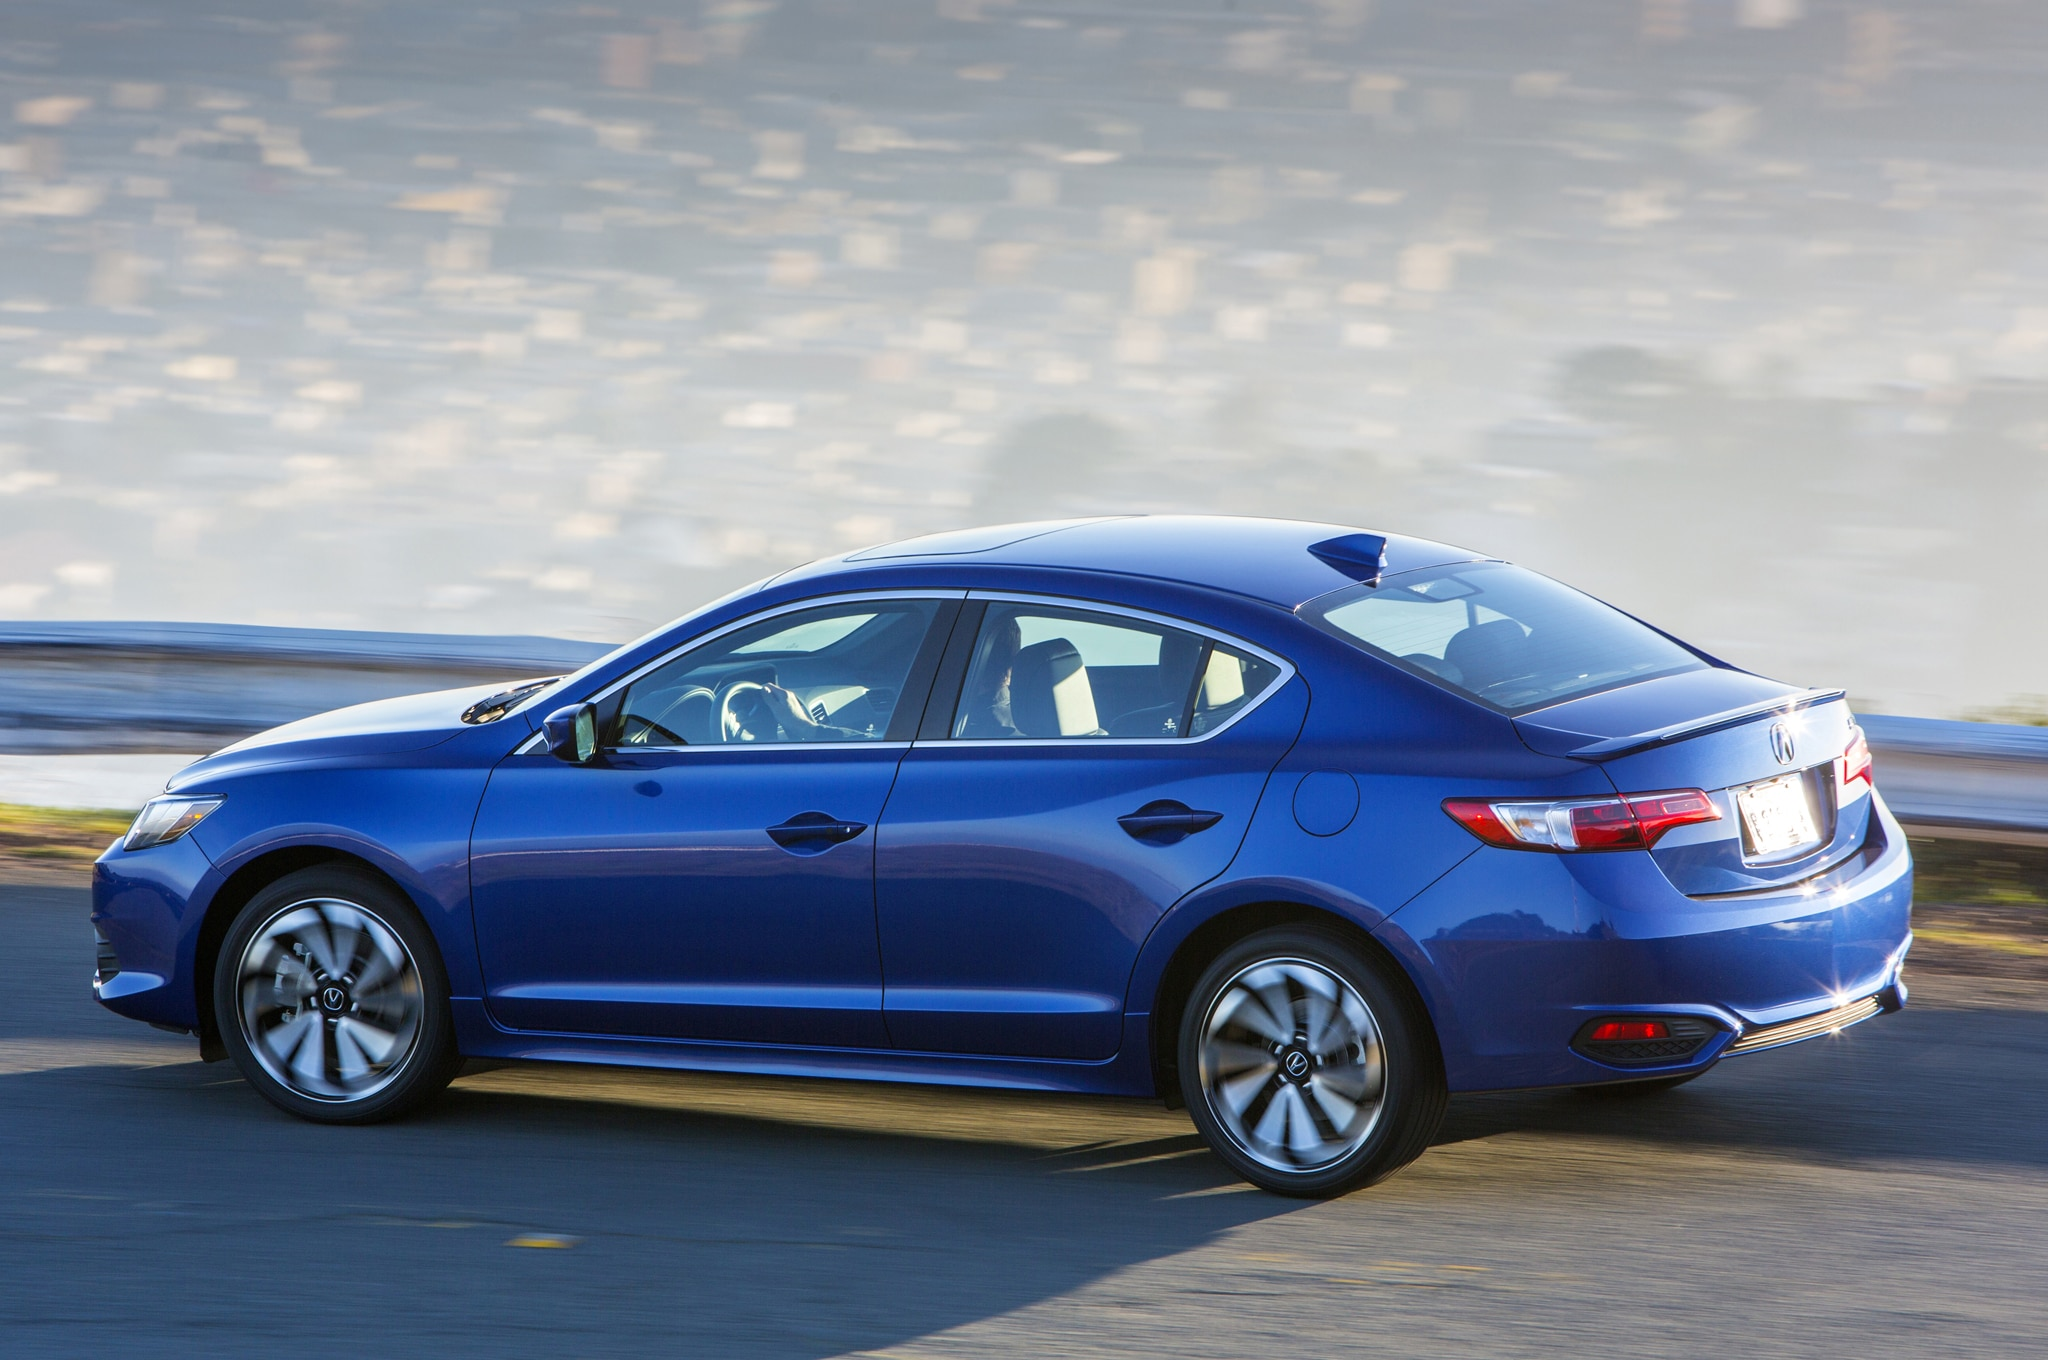 Acura ILX Review - Acura itx